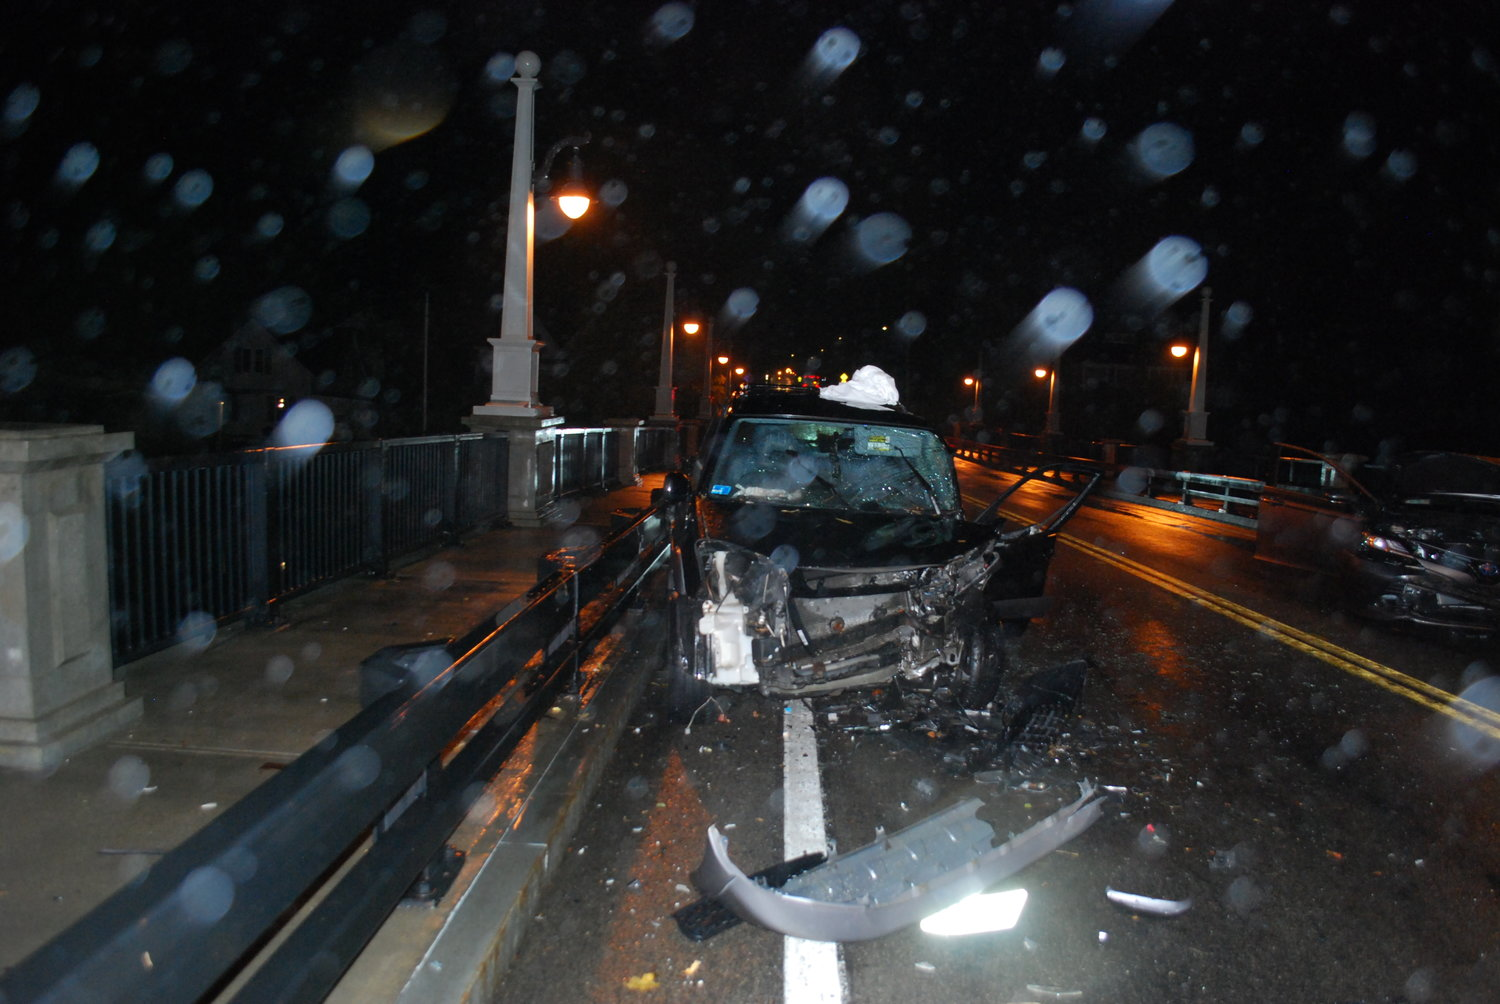 Police and fire department officials responded to a head-on crash on the Barrington River Bridge on Wednesday night, Oct. 30. Two motorists were injured.